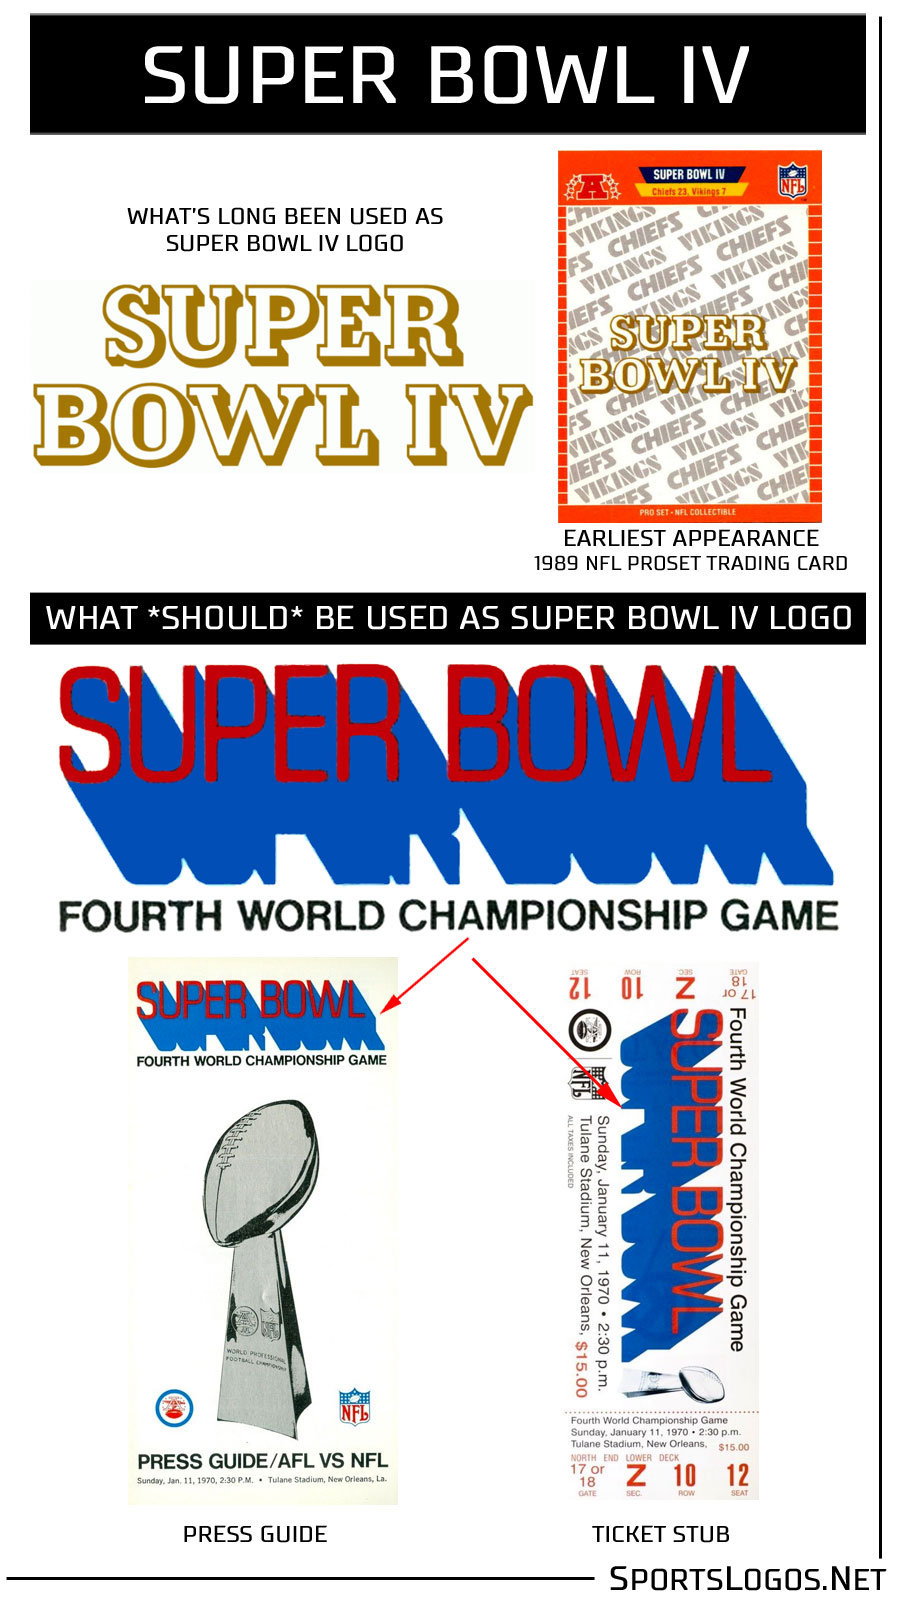 Correcting the Record: The First Four Super Bowl Logos